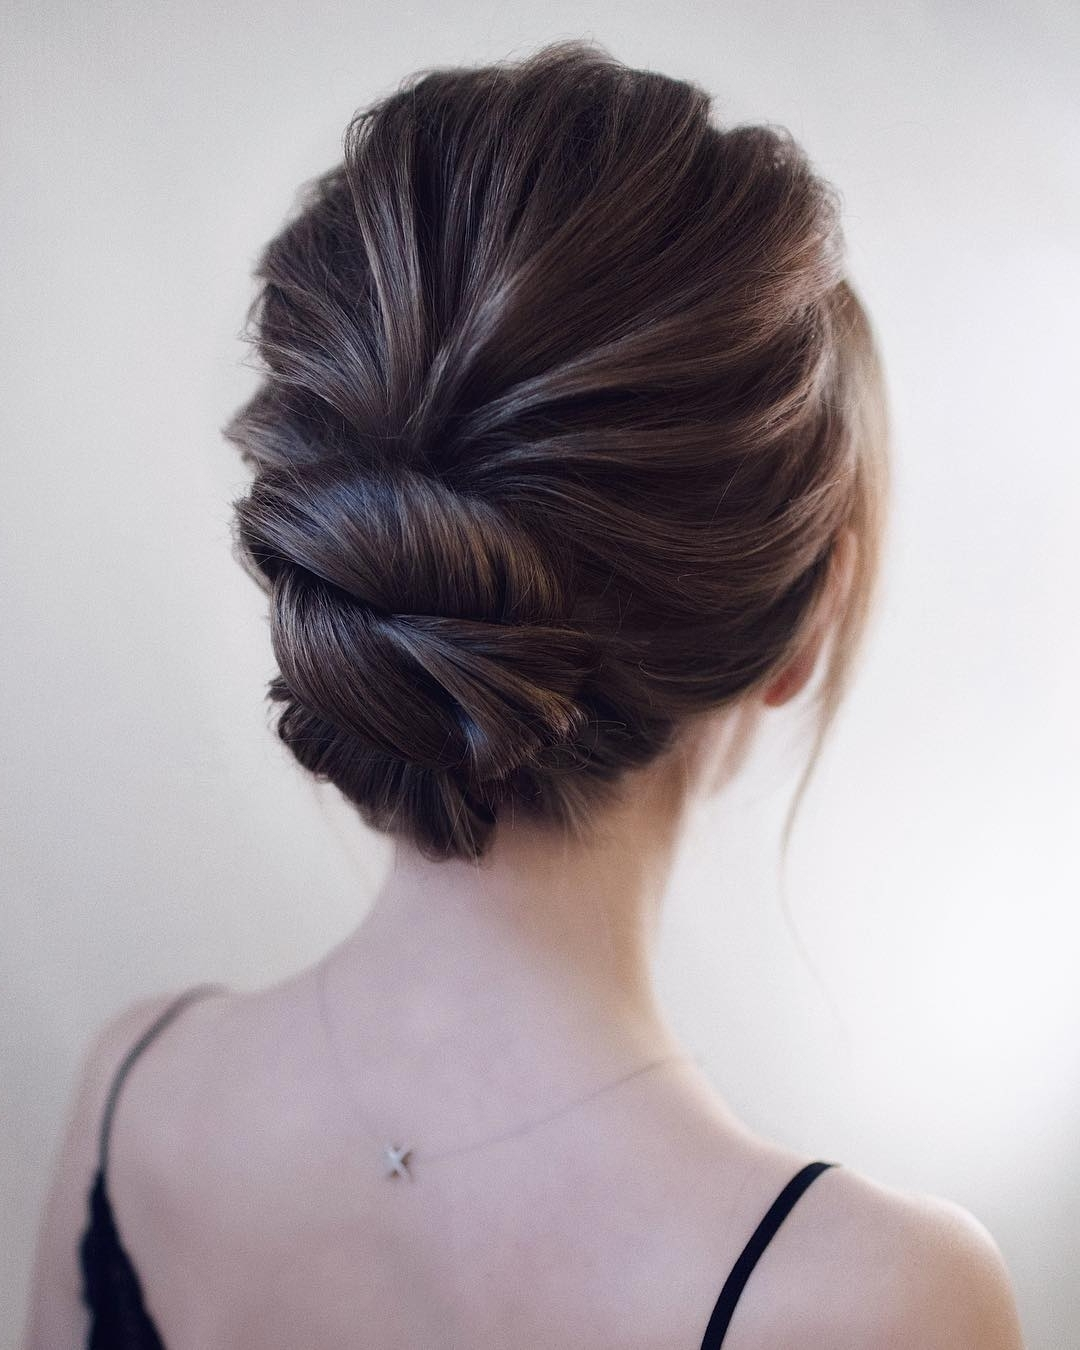 10 Updos For Medium Length Hair Prom & Homecoming Formal Hairstyles For Medium Length Hair